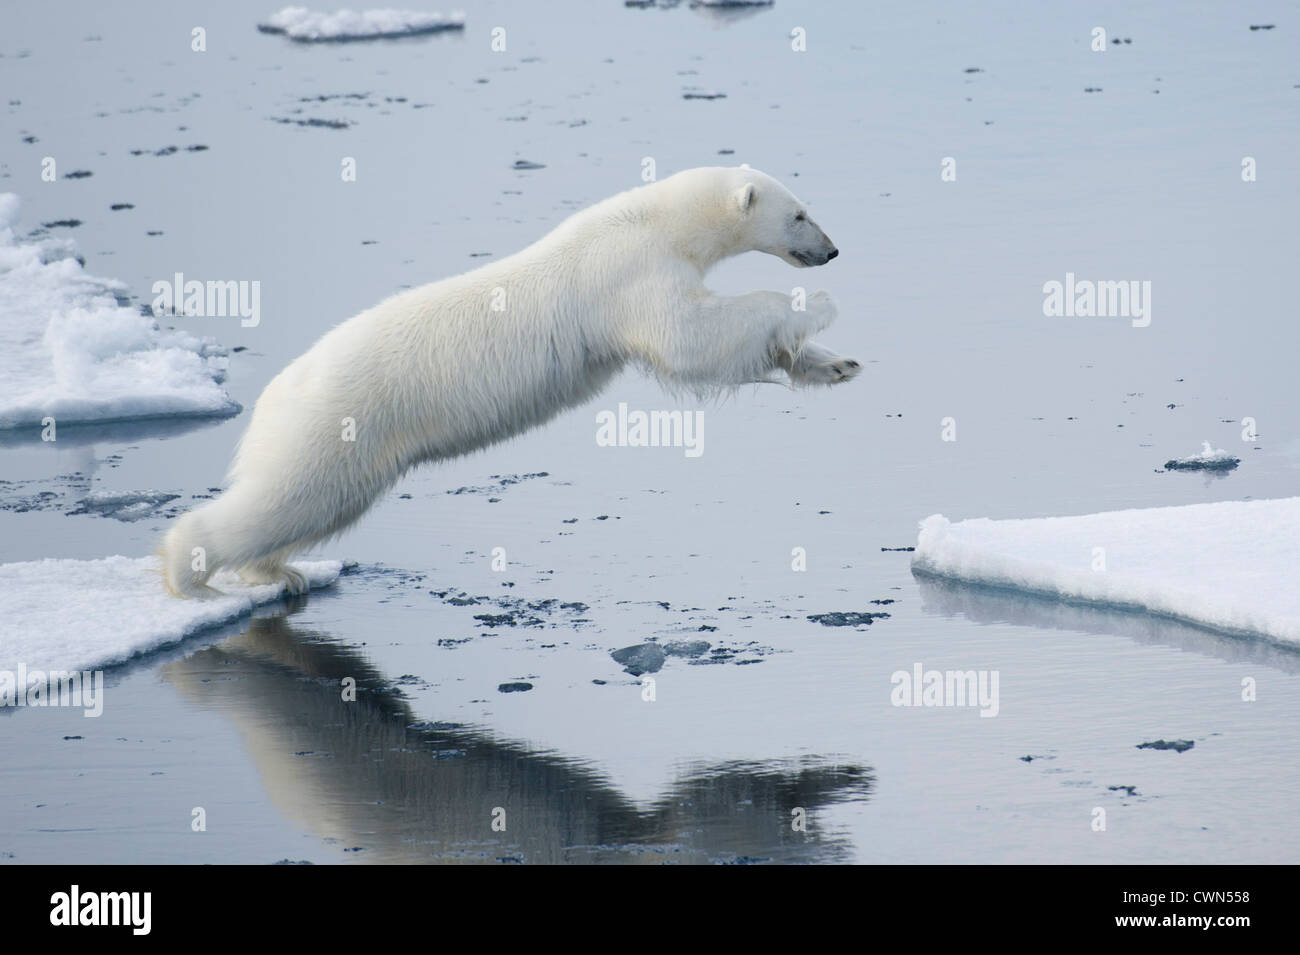 Polar bear, Ursus maritimus, jumping between floes of sea ice north of Spitsbergen, Svalbard, Arctic - Stock Image